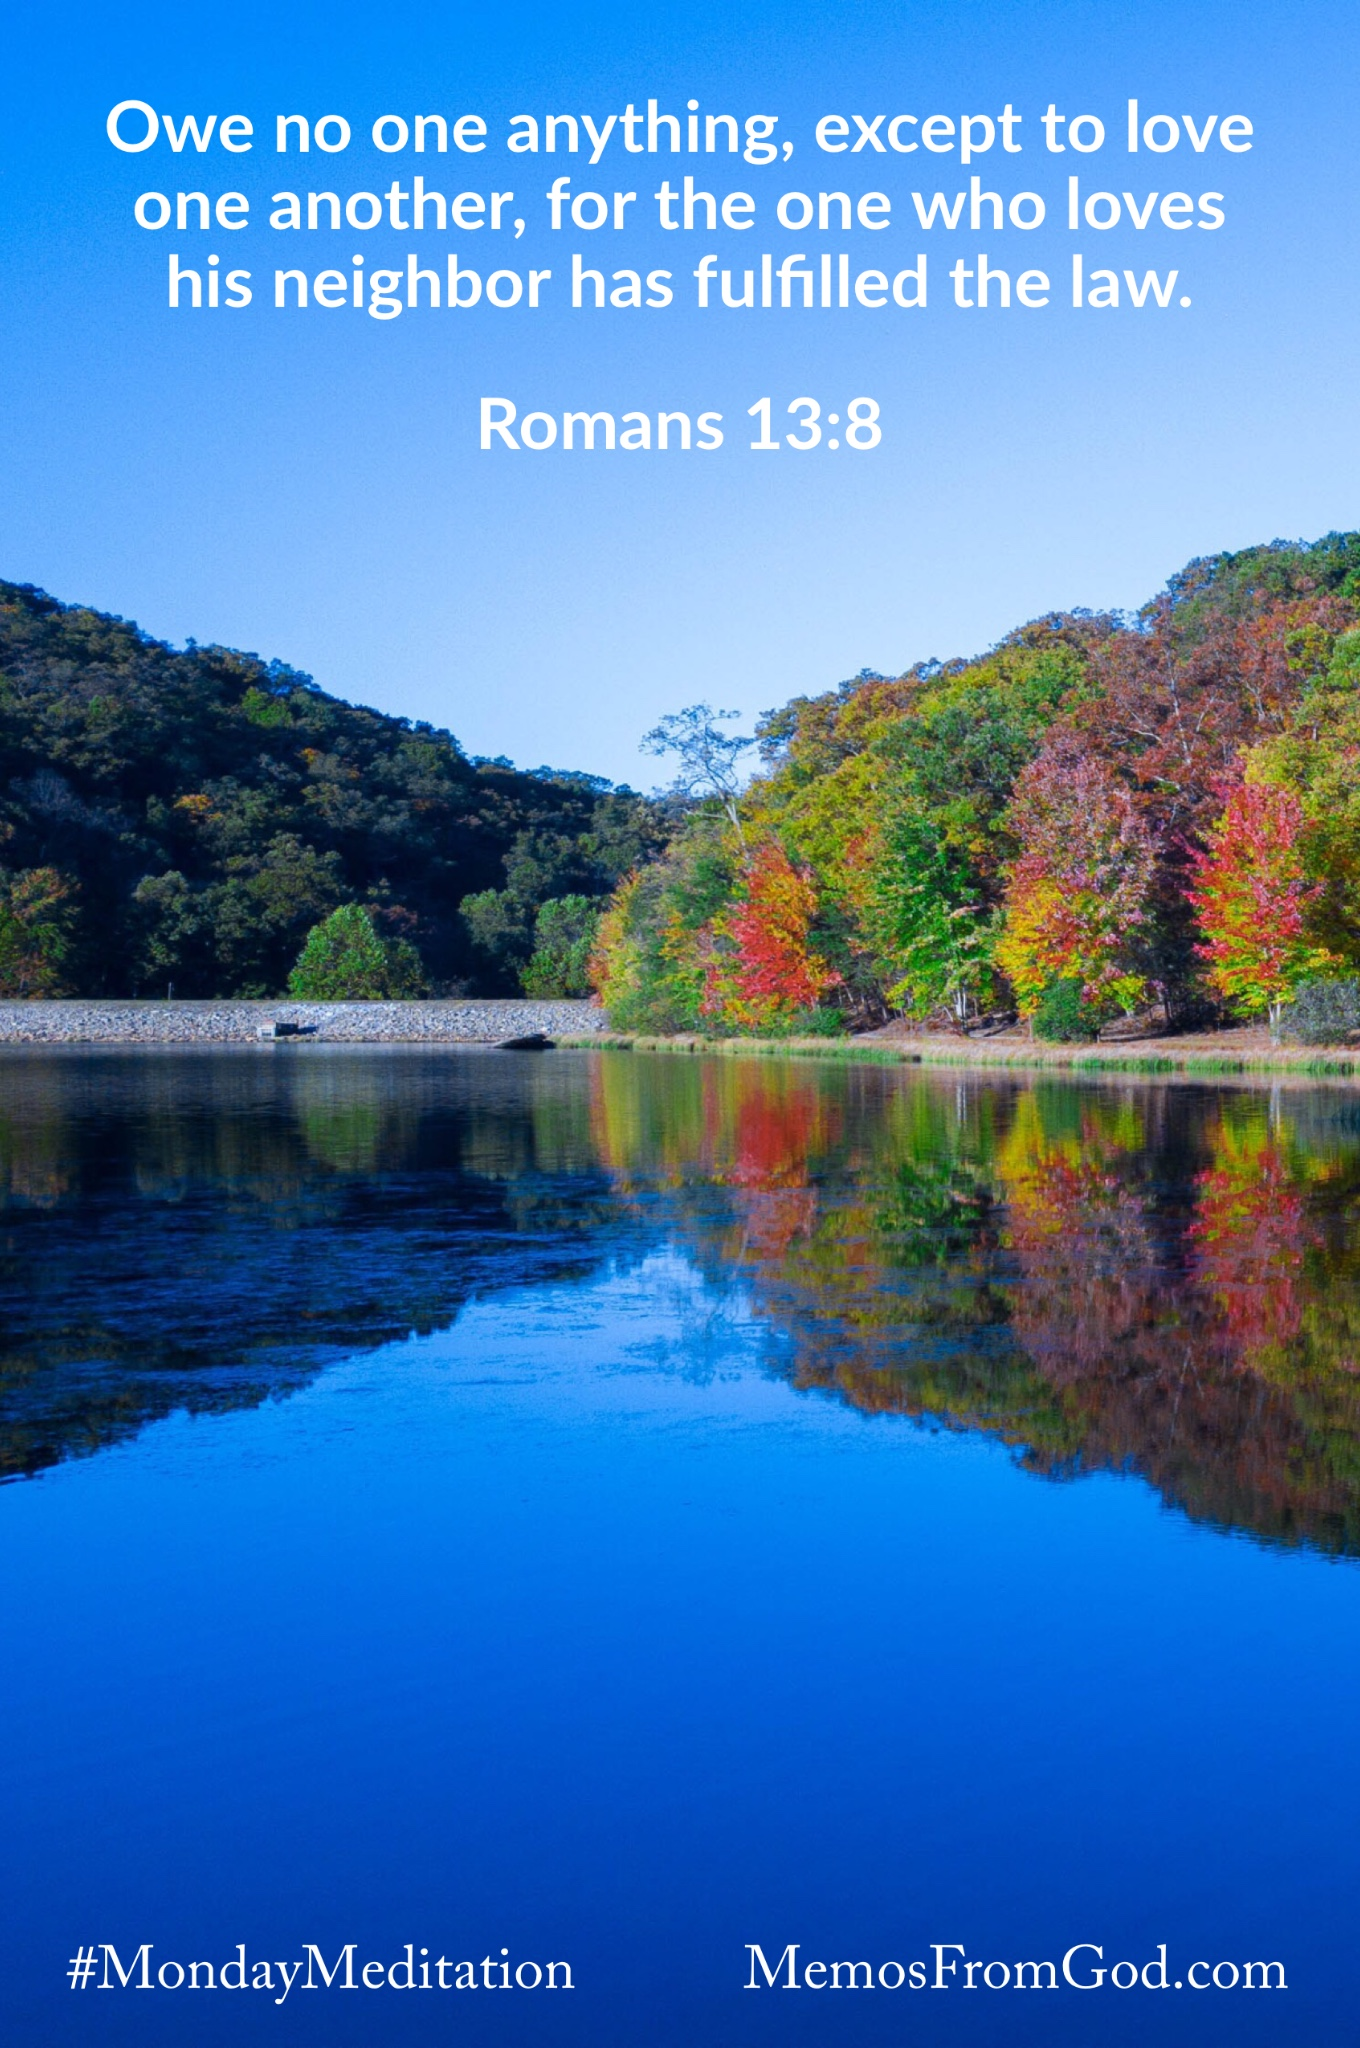 Trees with autumn coloured leaves reflecting in a deep blue lake beneath a bright blue sky. Caption: Owe no one anything, except to love one another, for the one who loves his neighbor has fulfilled the law. Romans 13:8